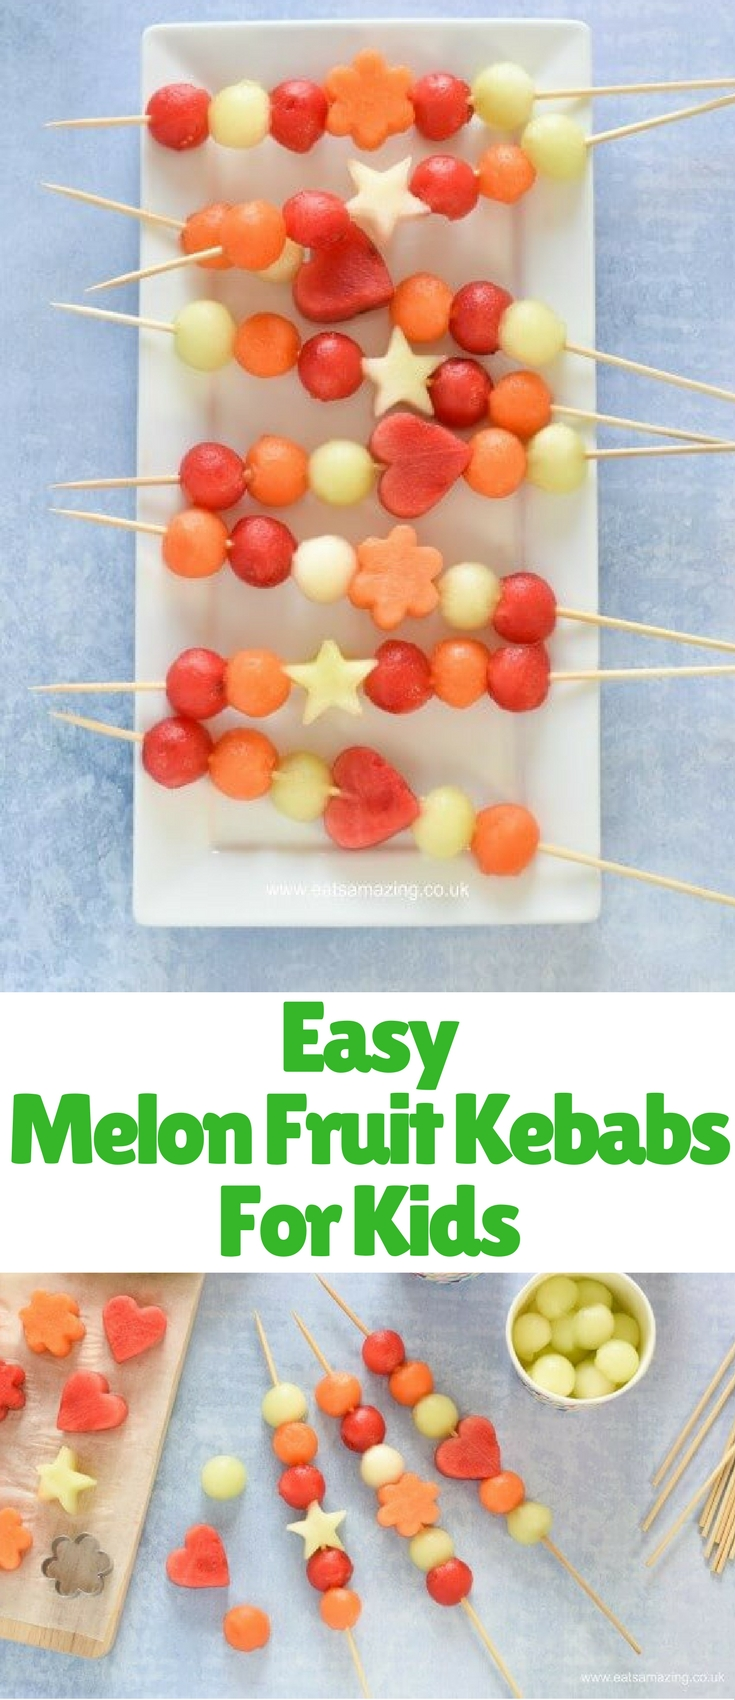 Looking for easy summer party food idea? These simple melon fruit kebabs could be just what you're looking for – easy and healthy, they make the perfect refreshing summer snack. Made from only fruit, they're a great allergy friendly treat to bring to a party too!